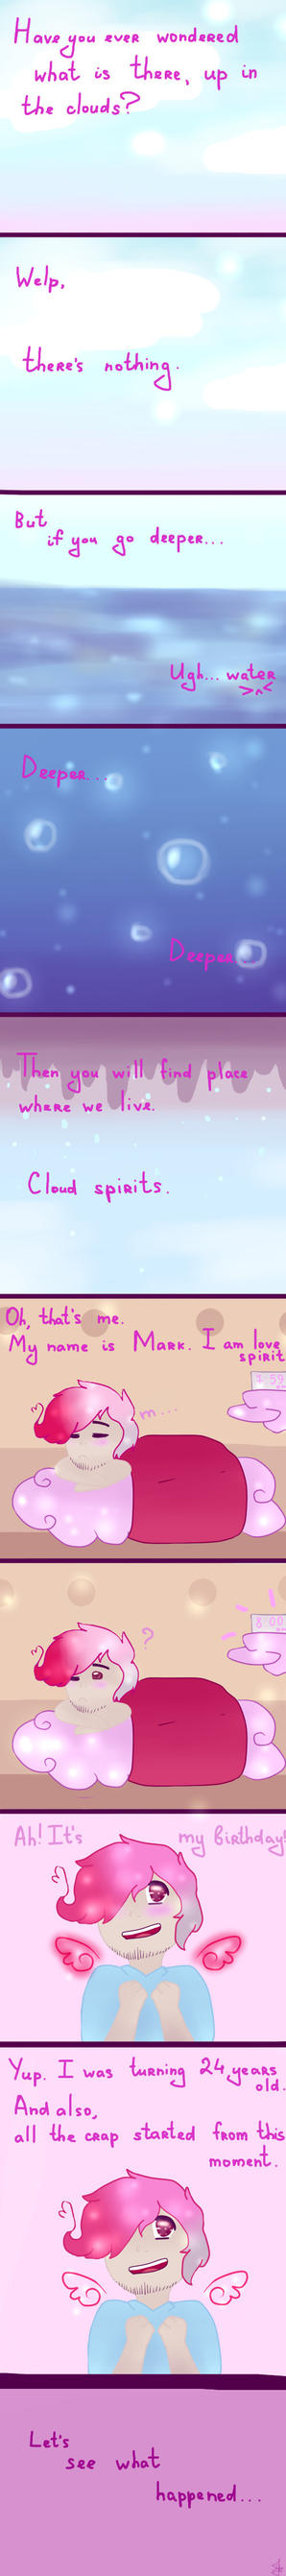 Deep in the clouds. (septiplier) #1 by EvinaRain